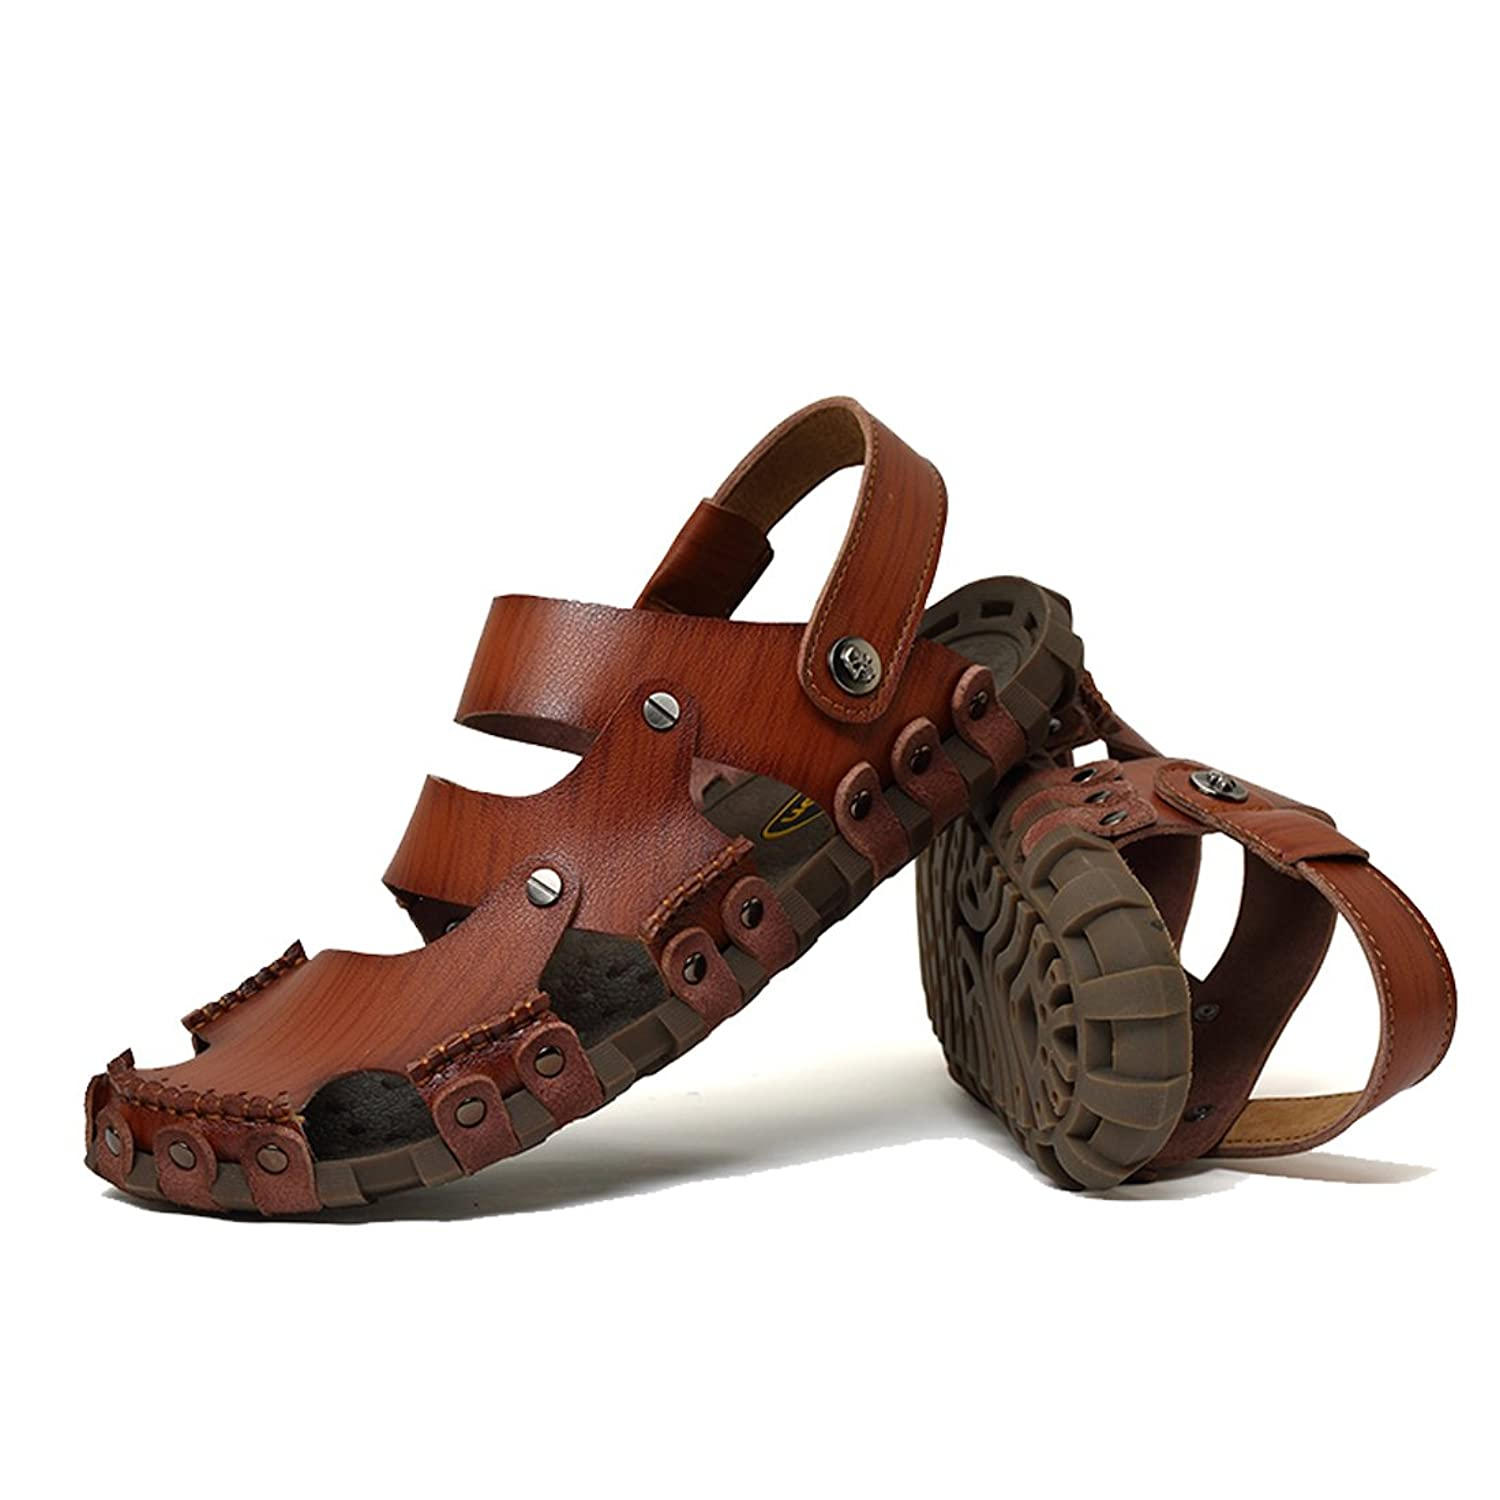 Manchester cheap price Genuine Leather Casual Sandals for Men shop for for sale best wholesale cheap online buy cheap reliable best wholesale for sale lrHYsWrOM